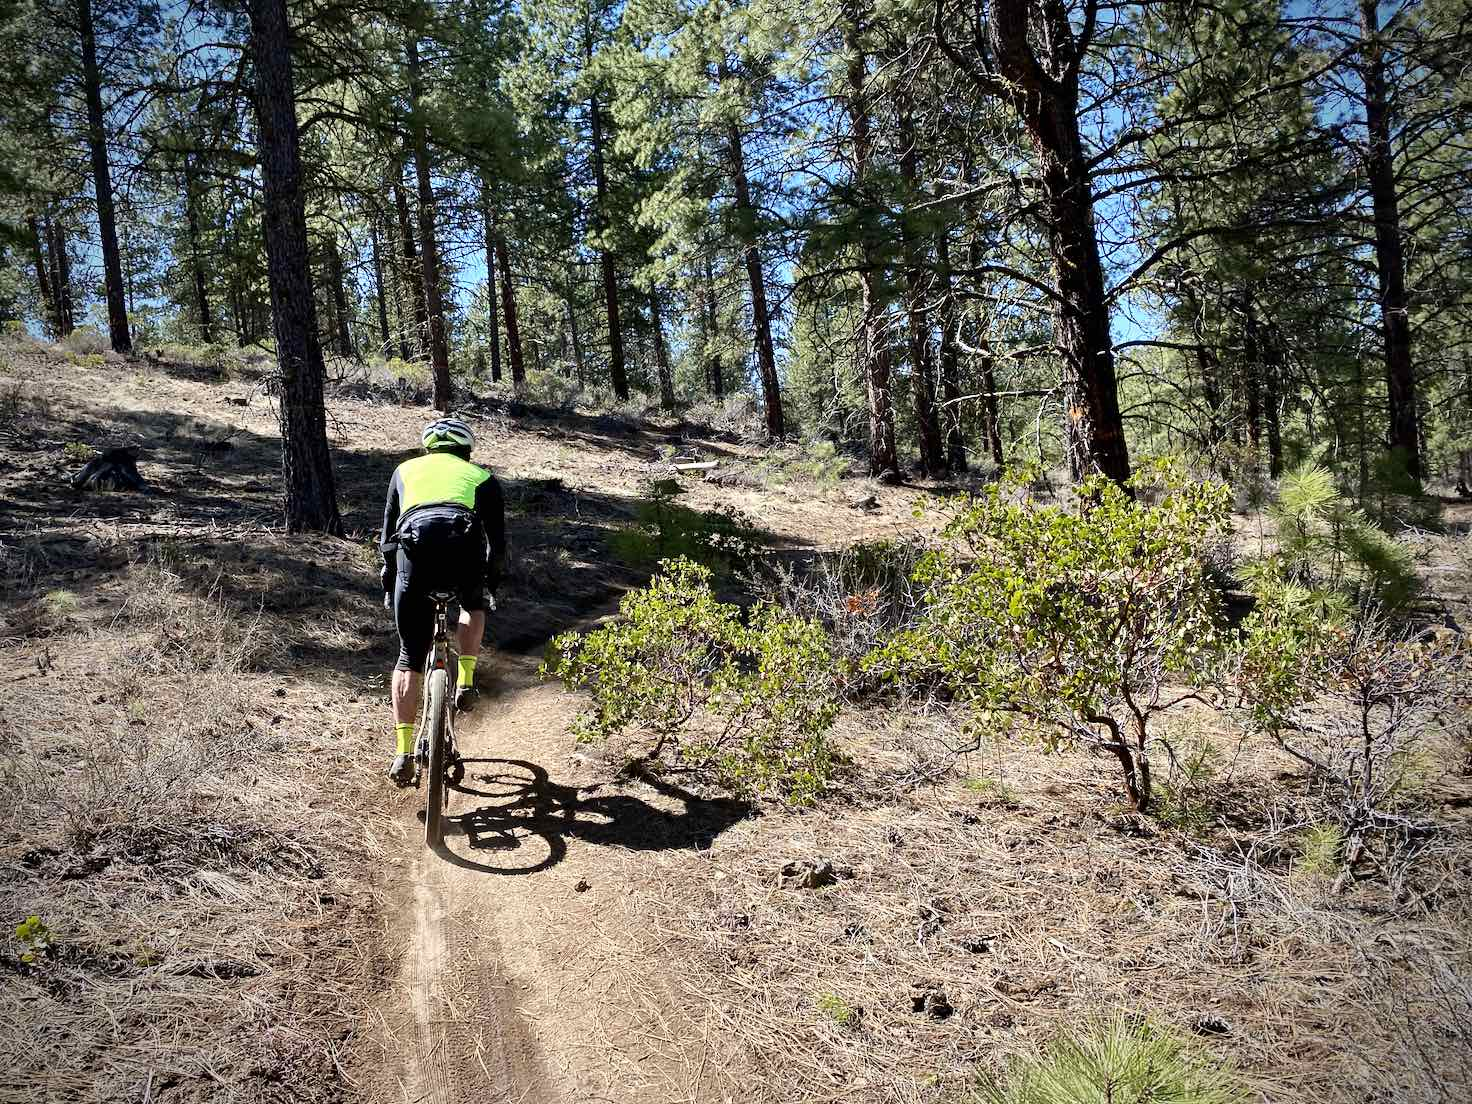 Gravel cyclist on the ELV single-track trail near Bend, OR.